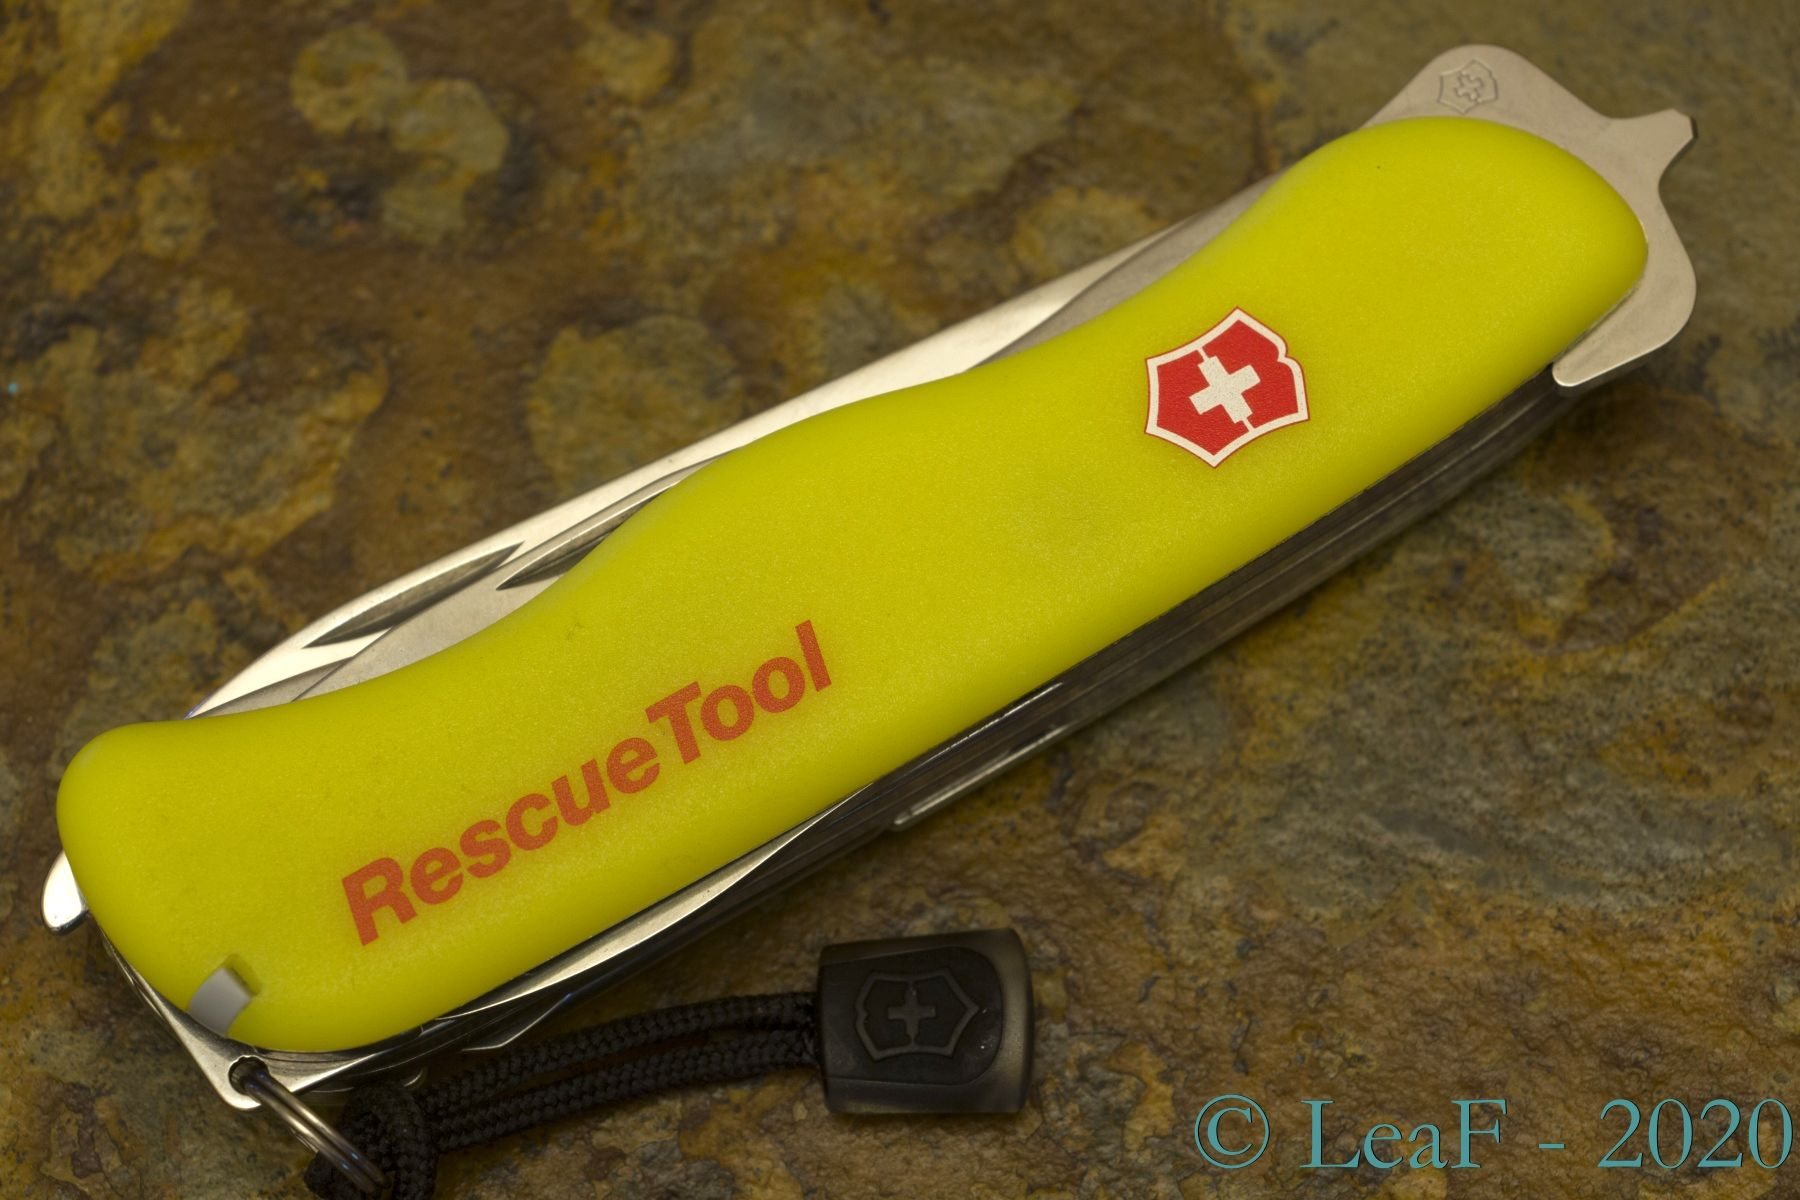 288 Rescue Tool Leaf S Victorinox Knives Collection